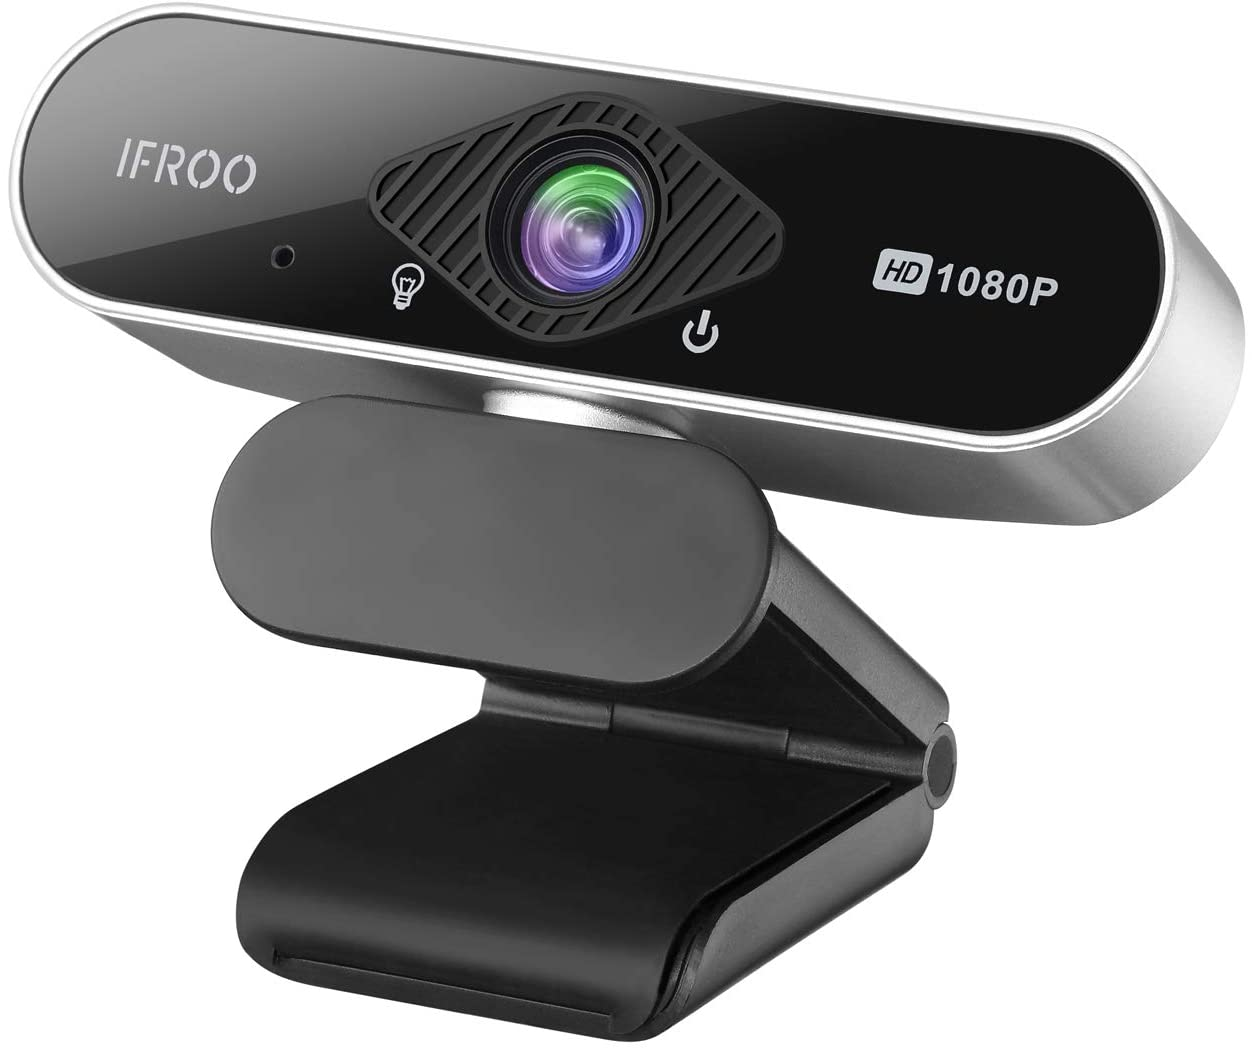 Ifroo - best webcam for Youtube